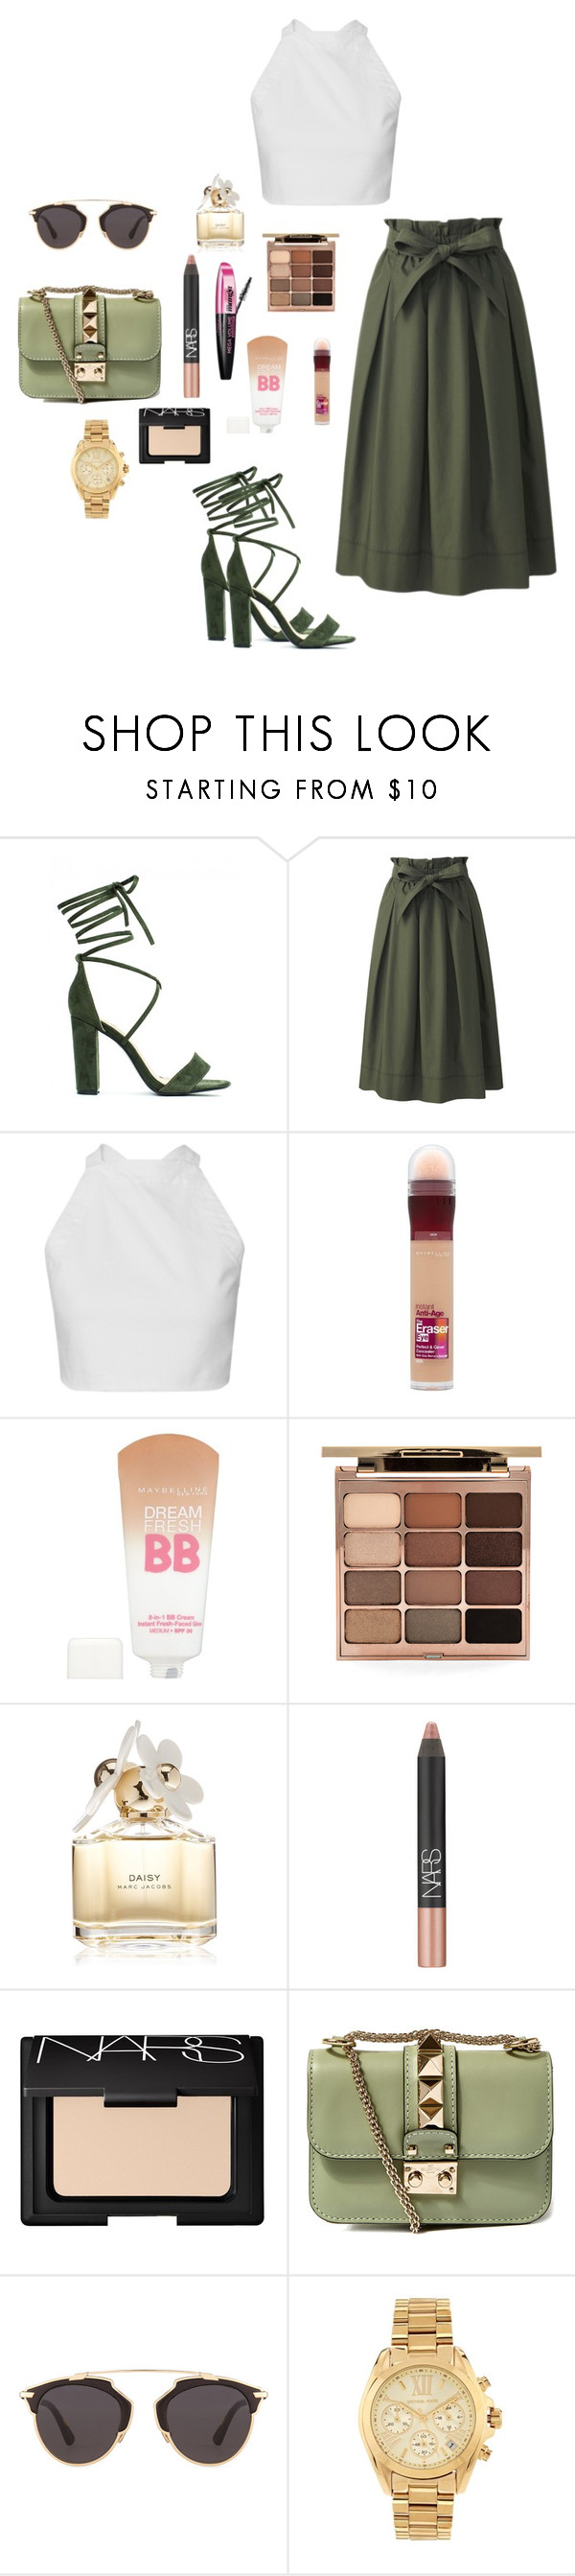 """""""M"""" by butnotperfect ❤ liked on Polyvore featuring Uniqlo, Maybelline, Stila, L'Oréal Paris, Marc Jacobs, NARS Cosmetics, Valentino, Christian Dior and Michael Kors"""